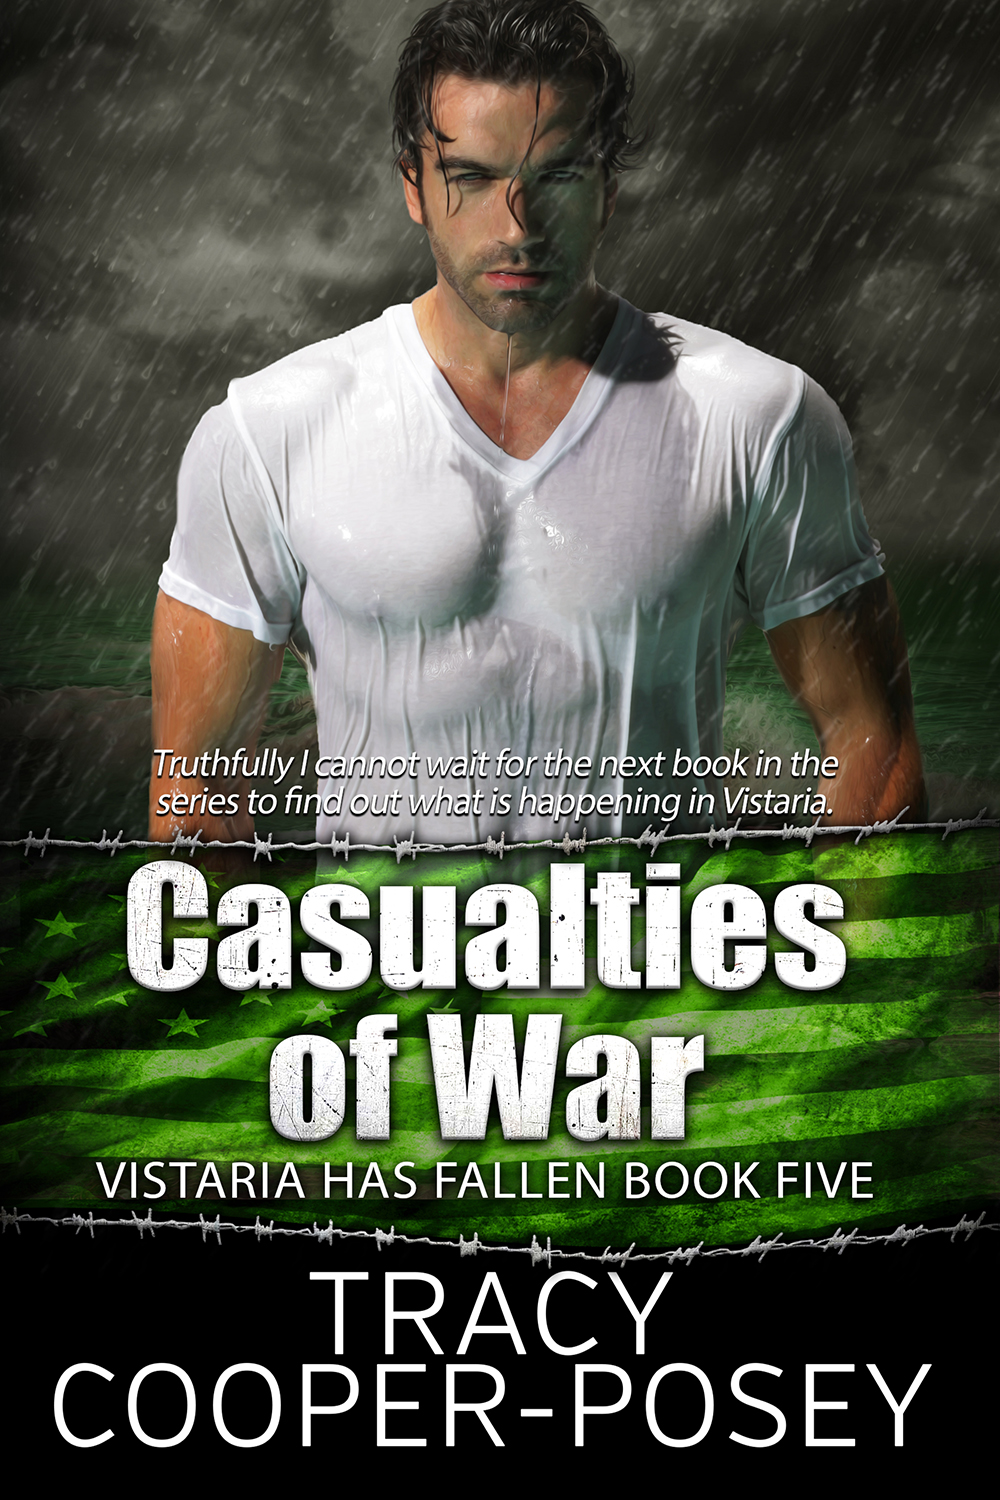 CASUALTIES OF WAR Cover Reveal (woah!) and pre-order out now.